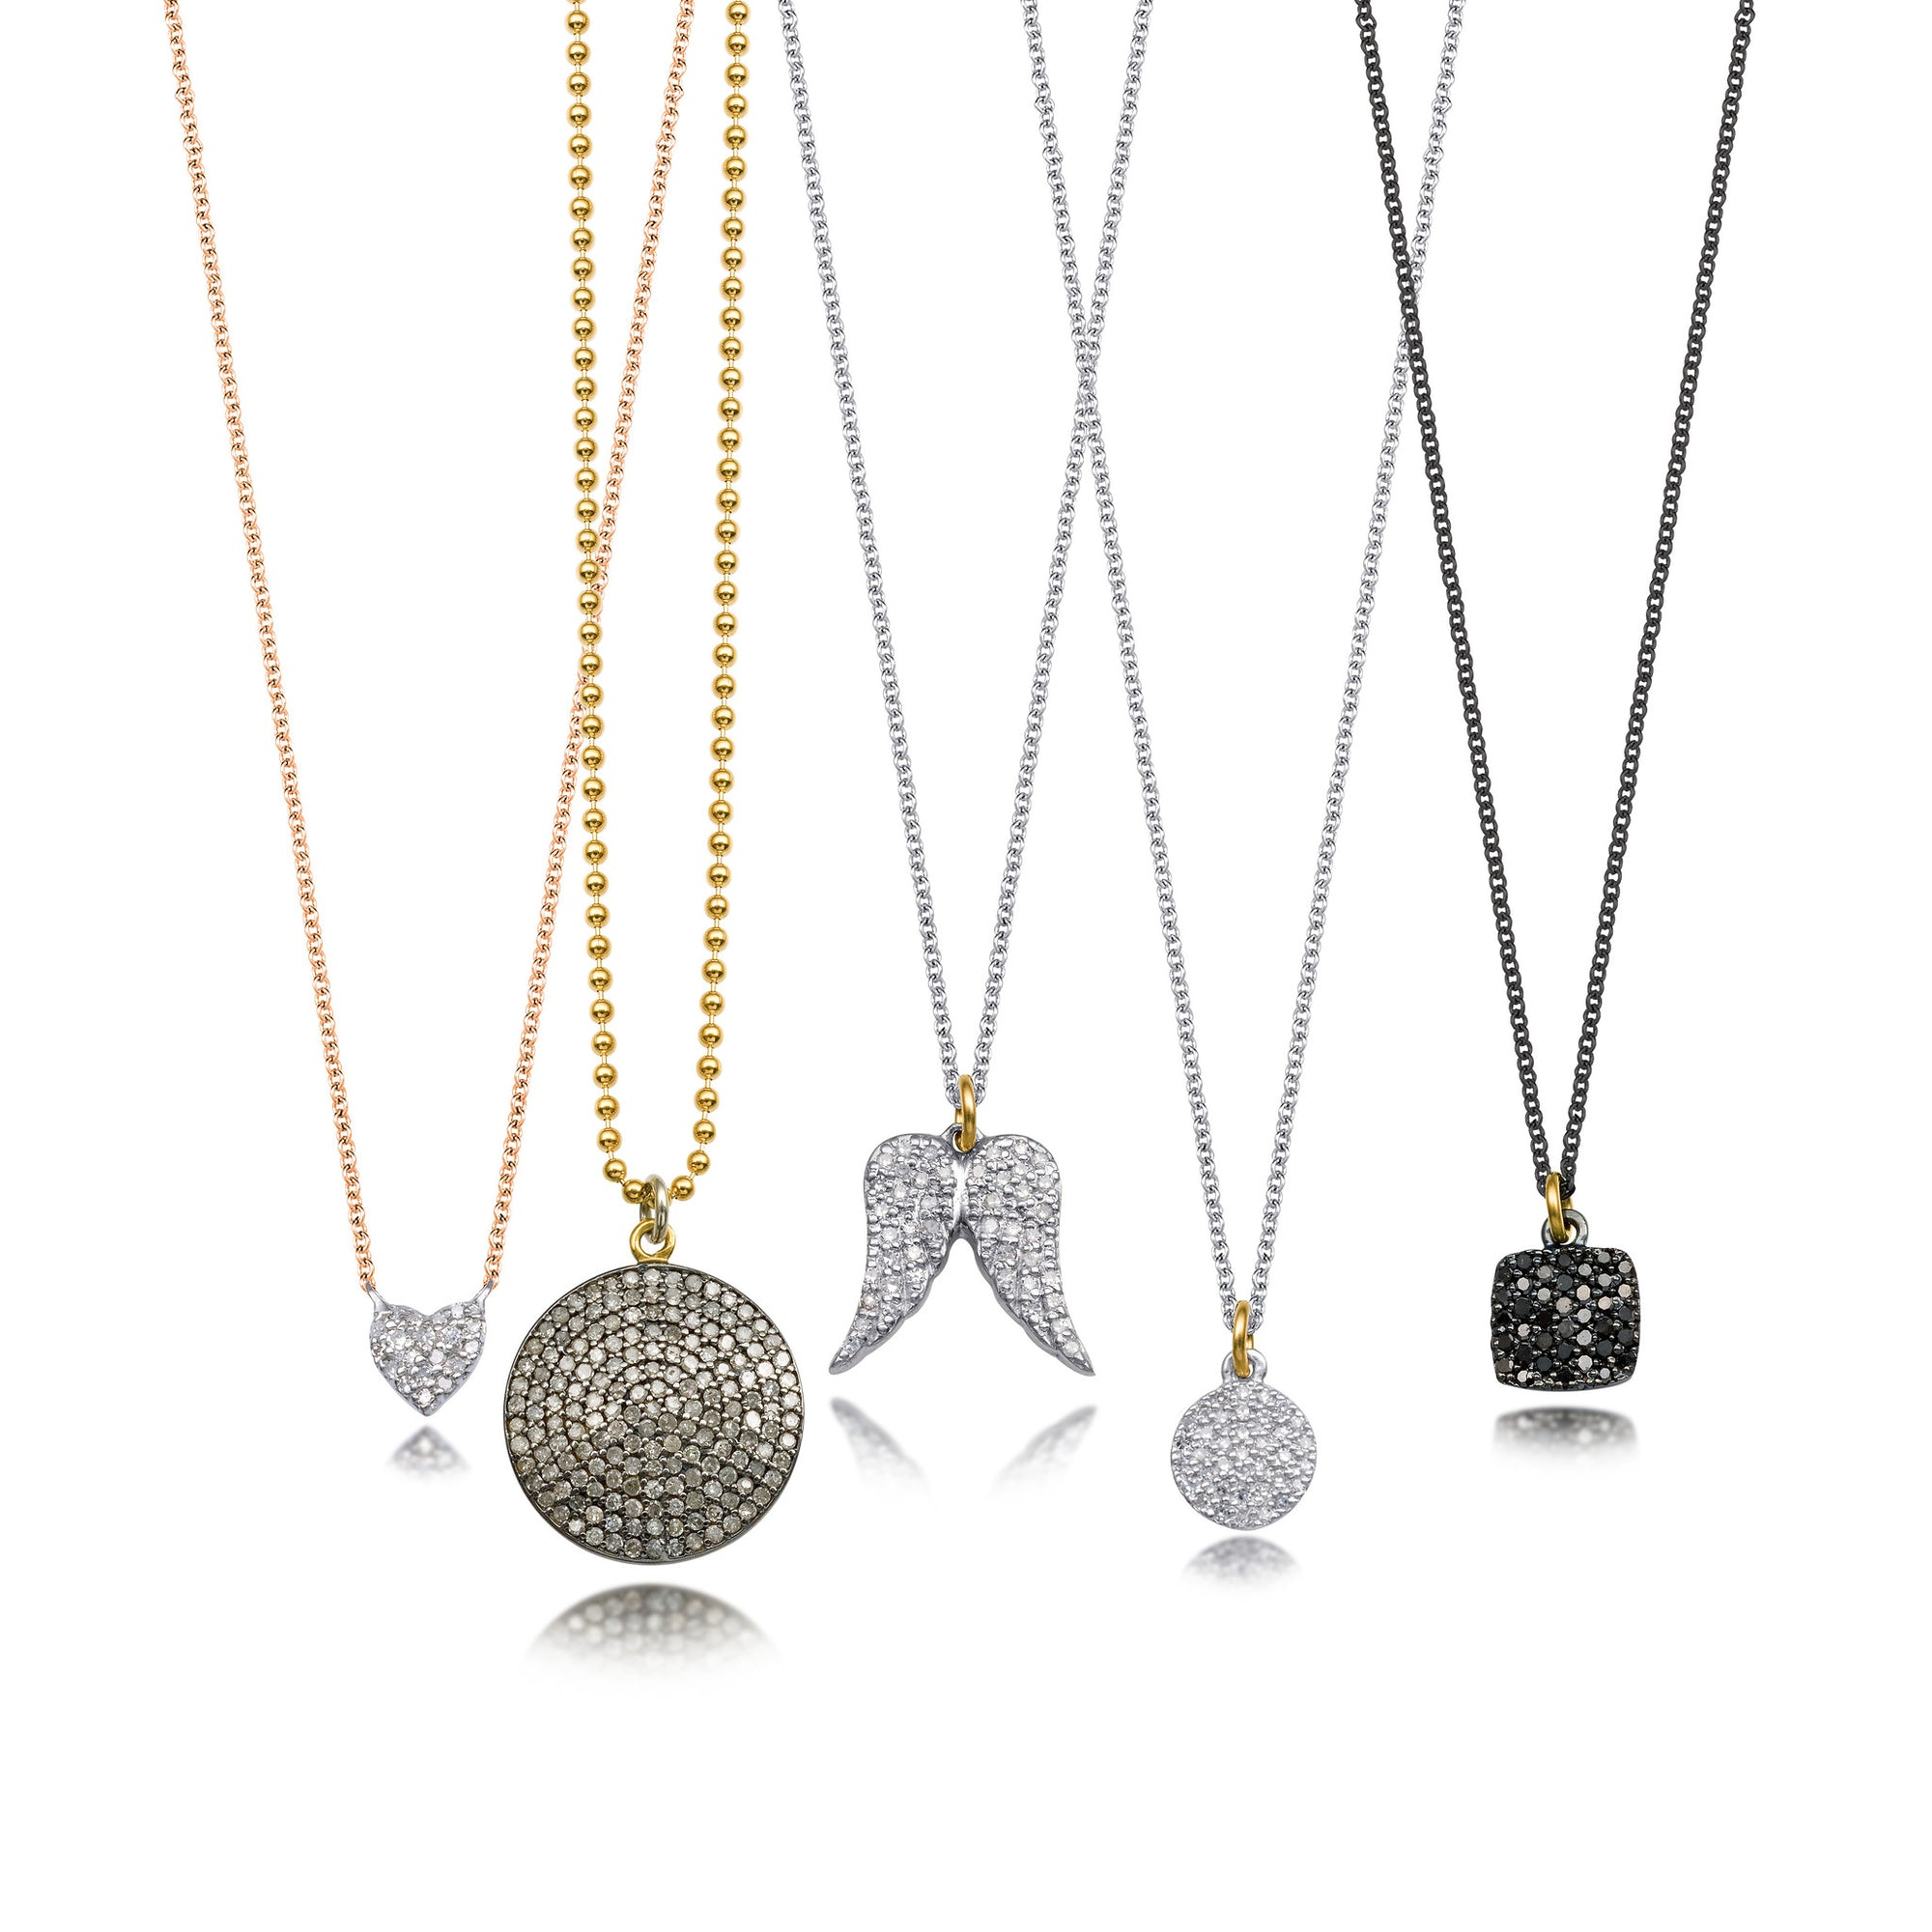 magdalena necklaces collections bg black sb san ah m by products designs gold and benito vsa necklace diamond